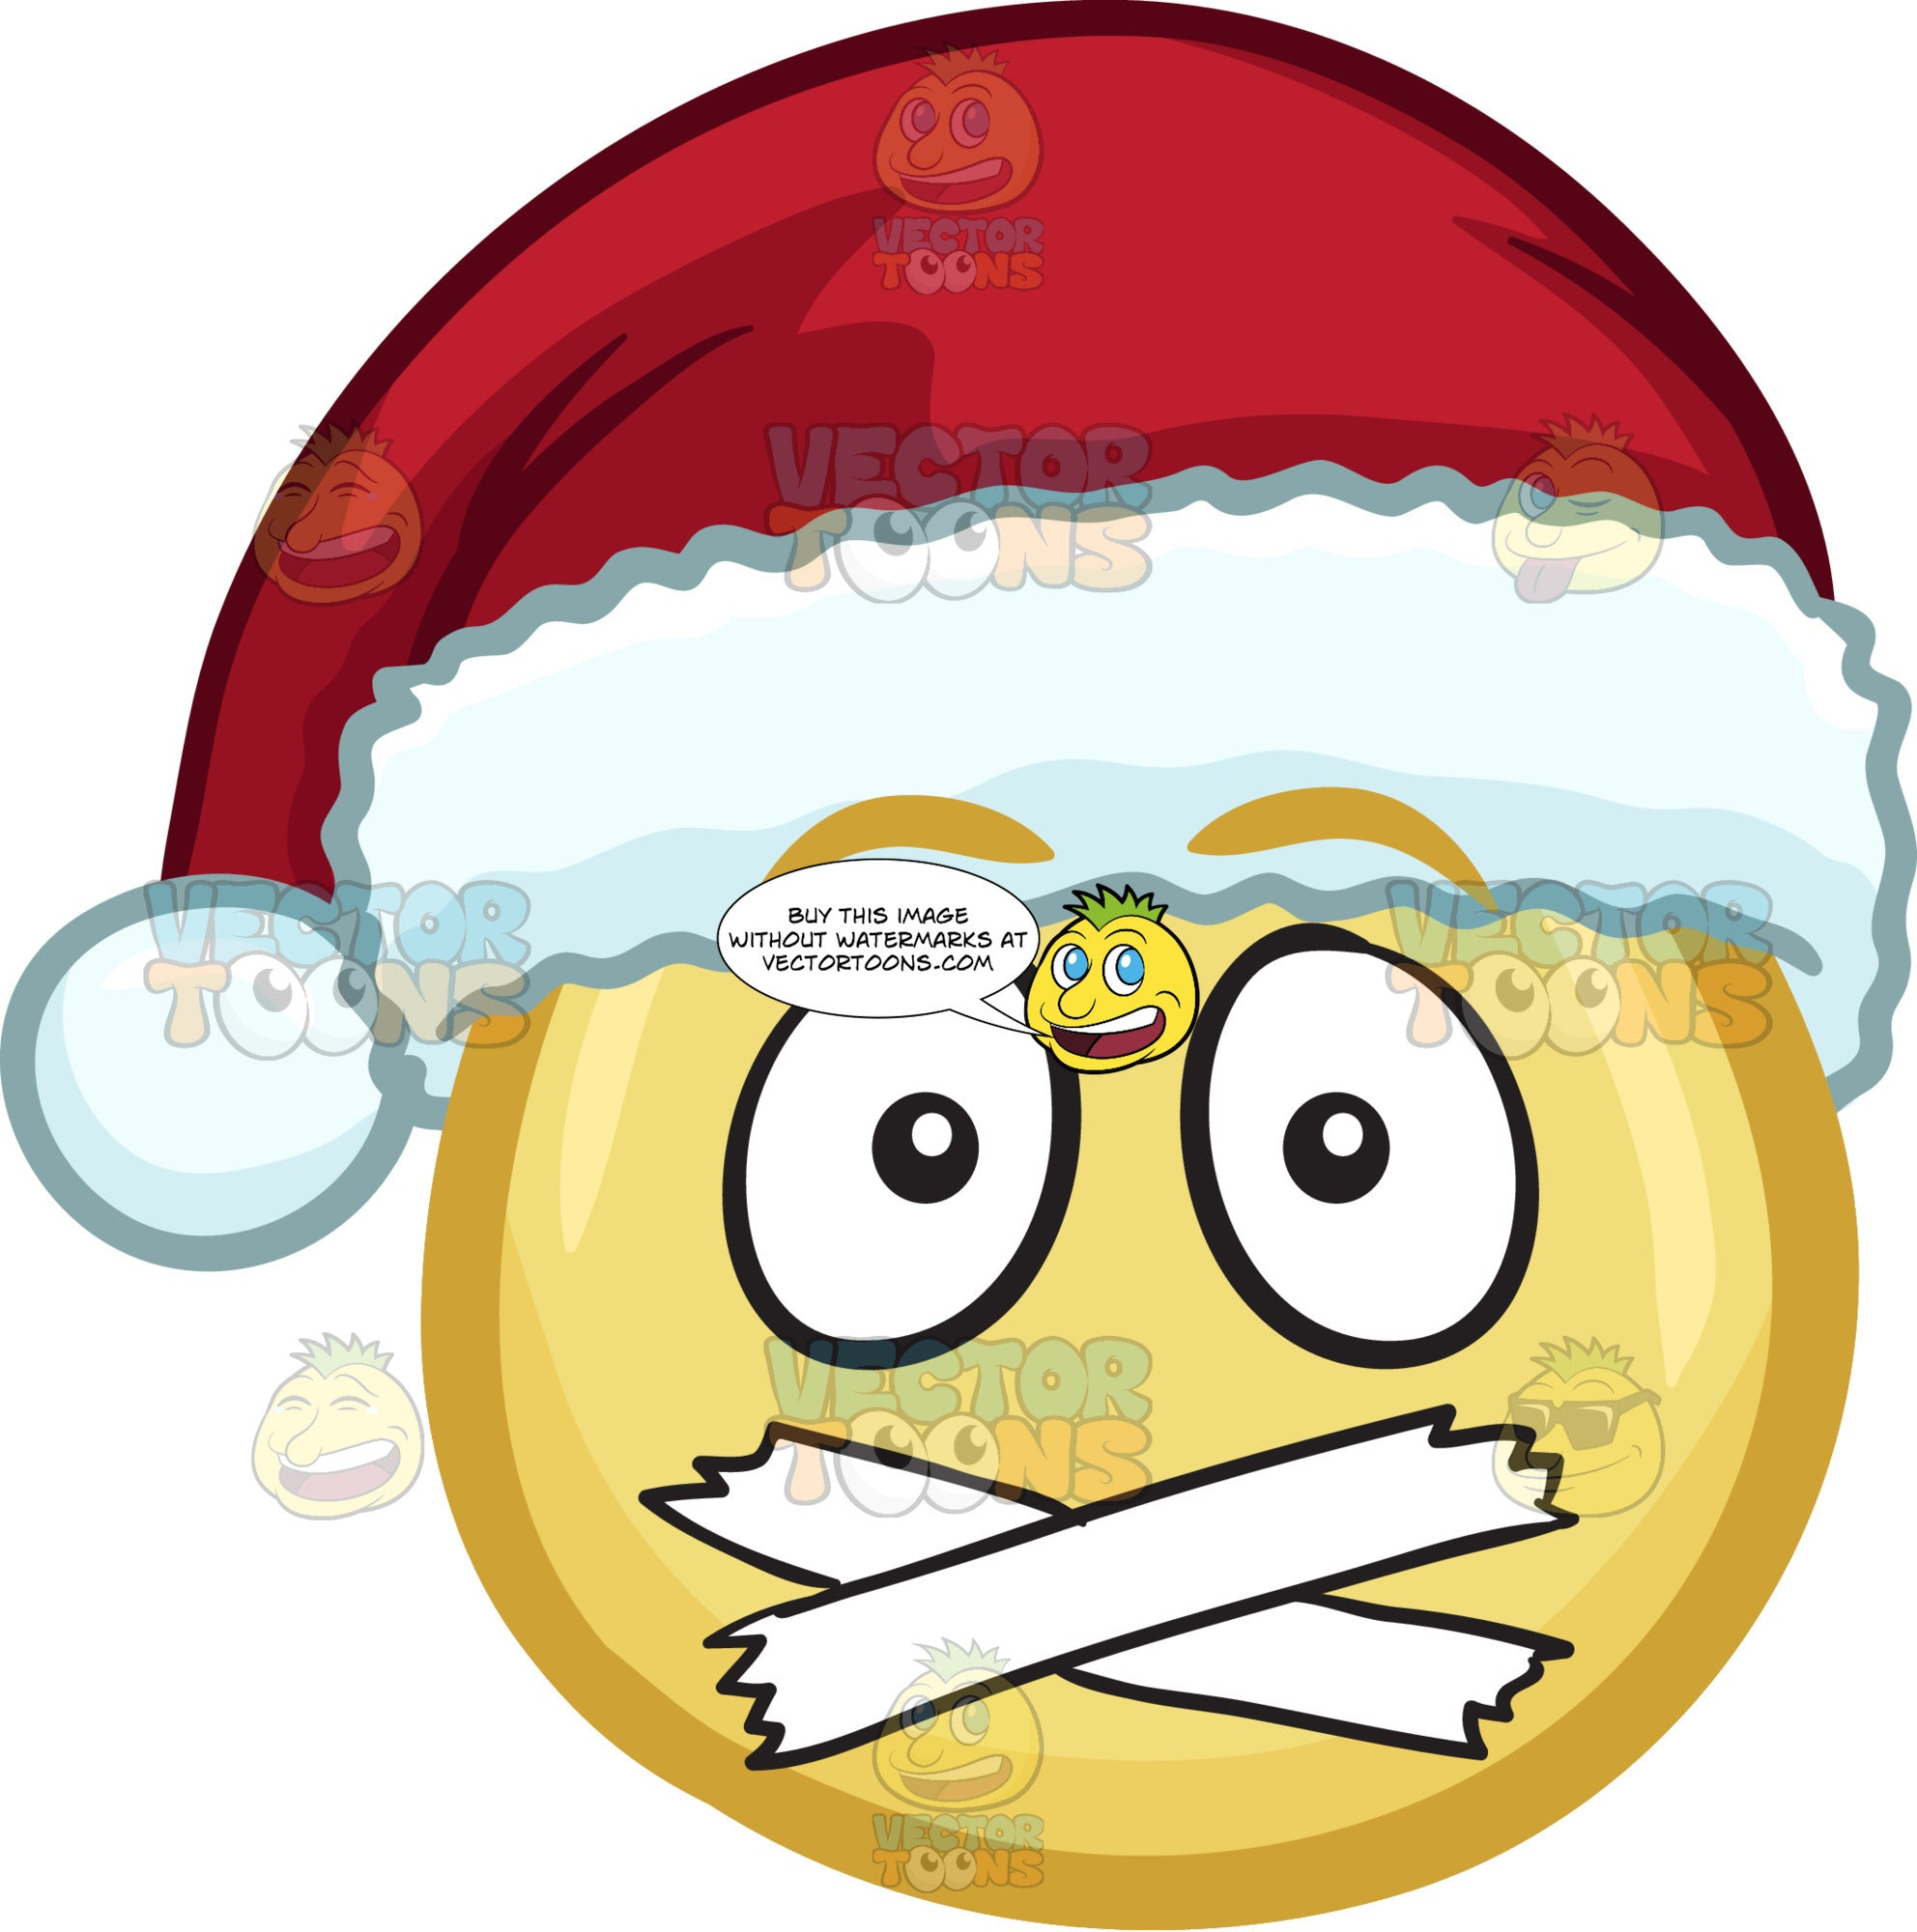 A Emoji Wearing A Santa Hat With Taped Mouth